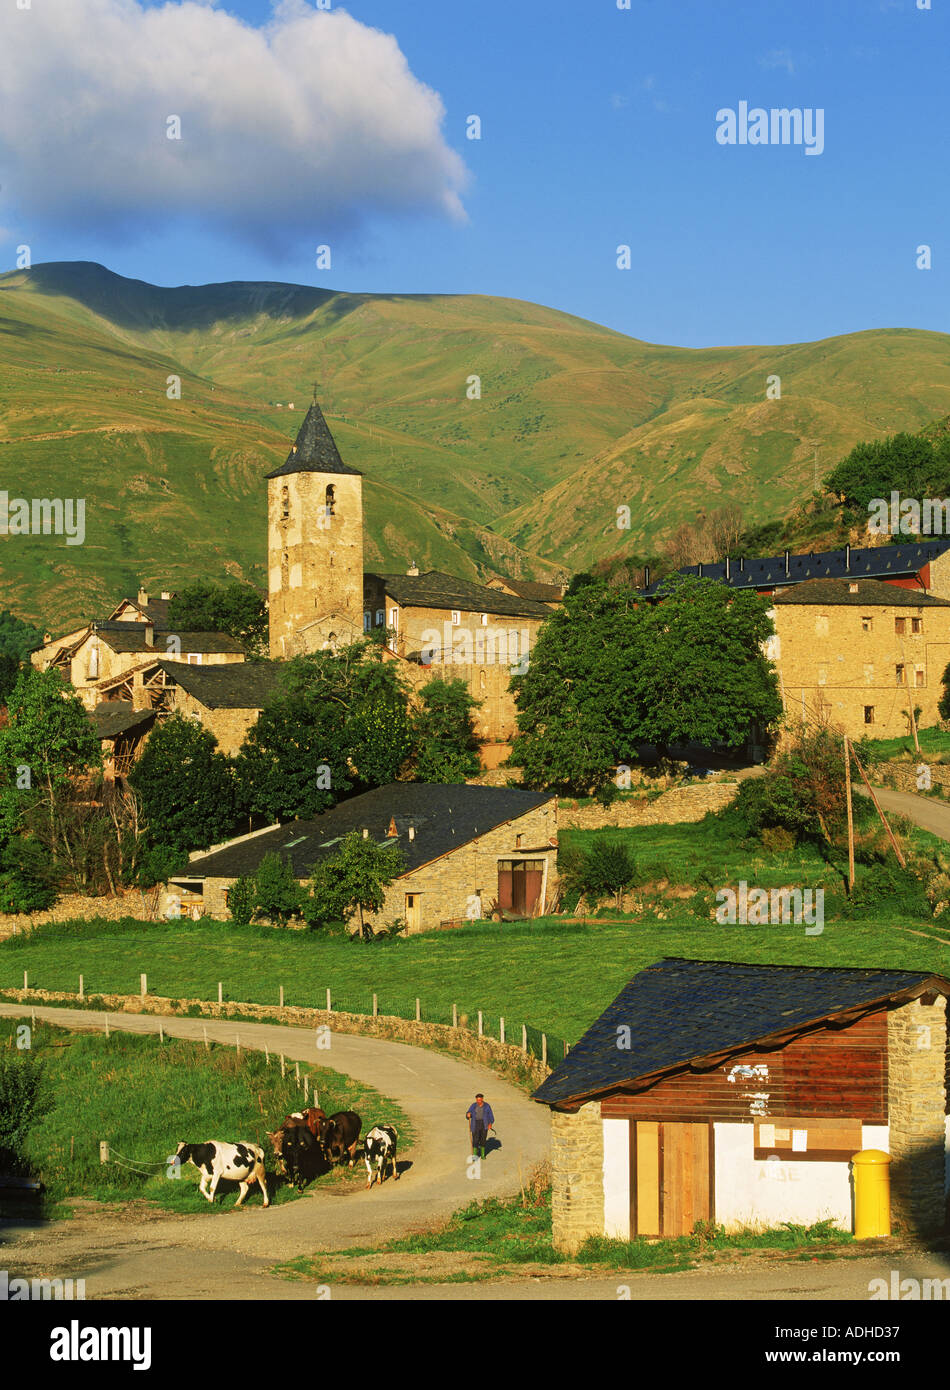 Village of Llessui near Sort in Lleida province Catalonia Spain - Stock Image